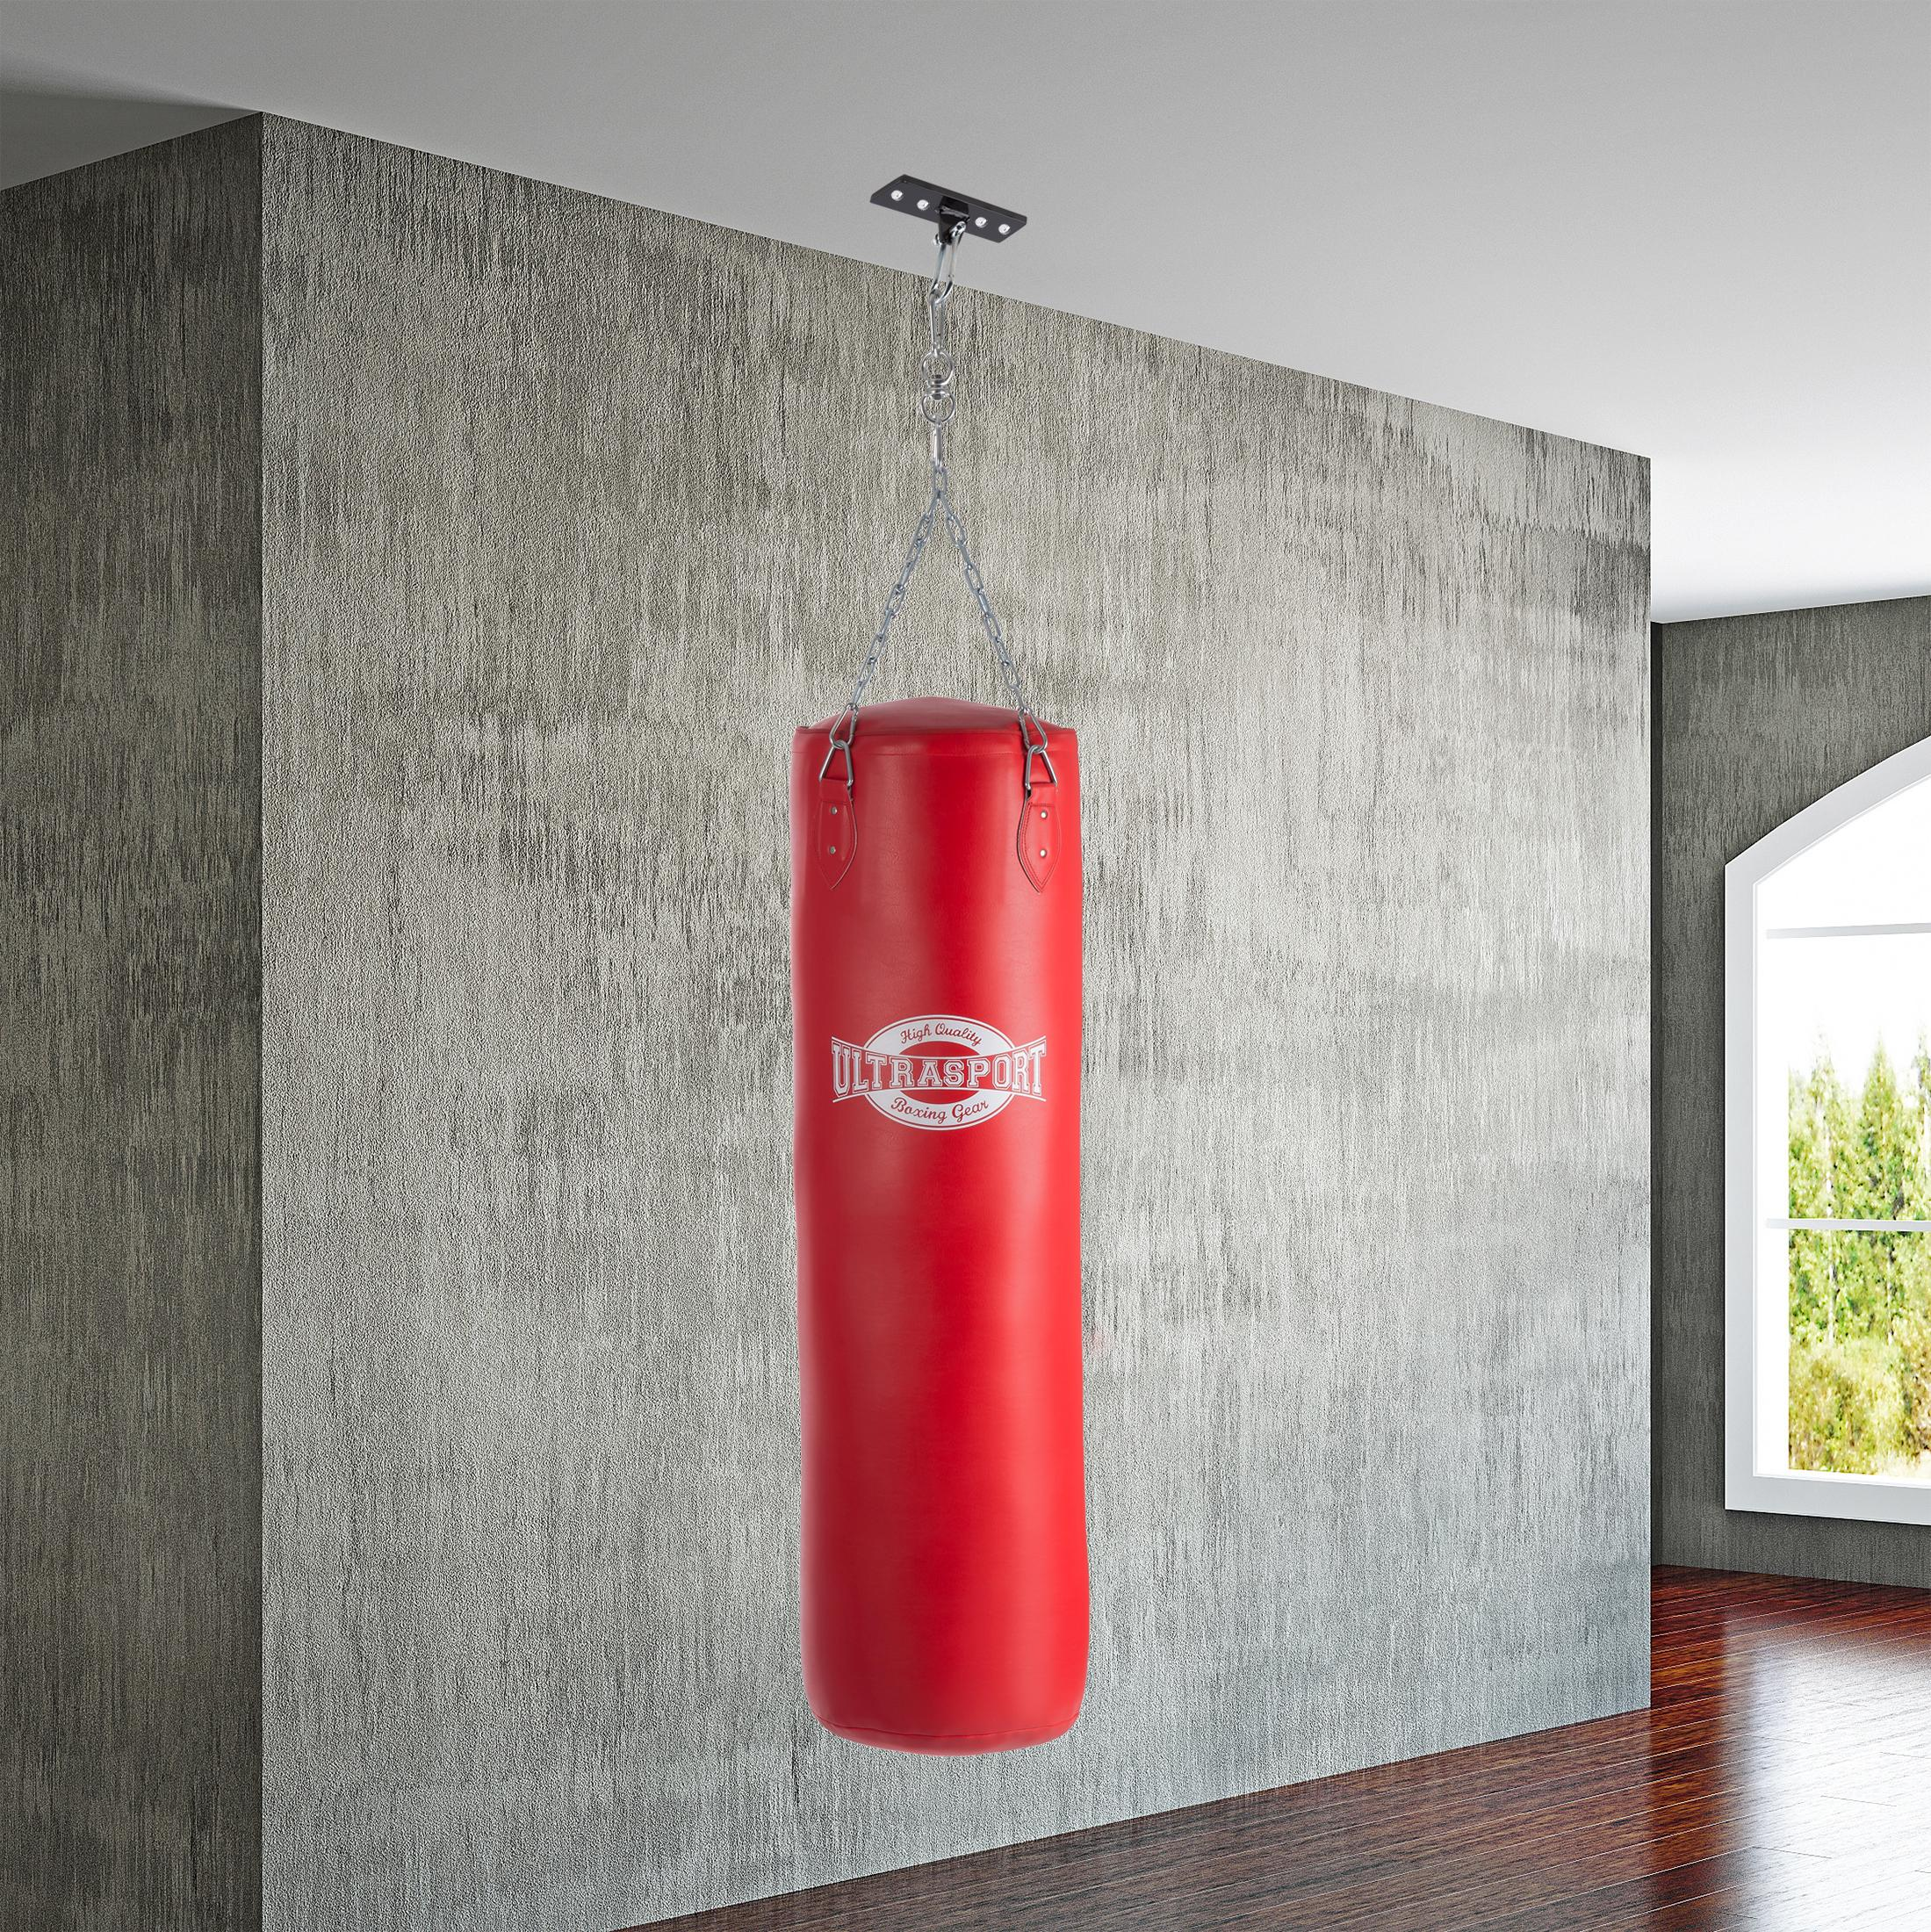 ultrasport gamme boxing gear fixation de plafond pour. Black Bedroom Furniture Sets. Home Design Ideas